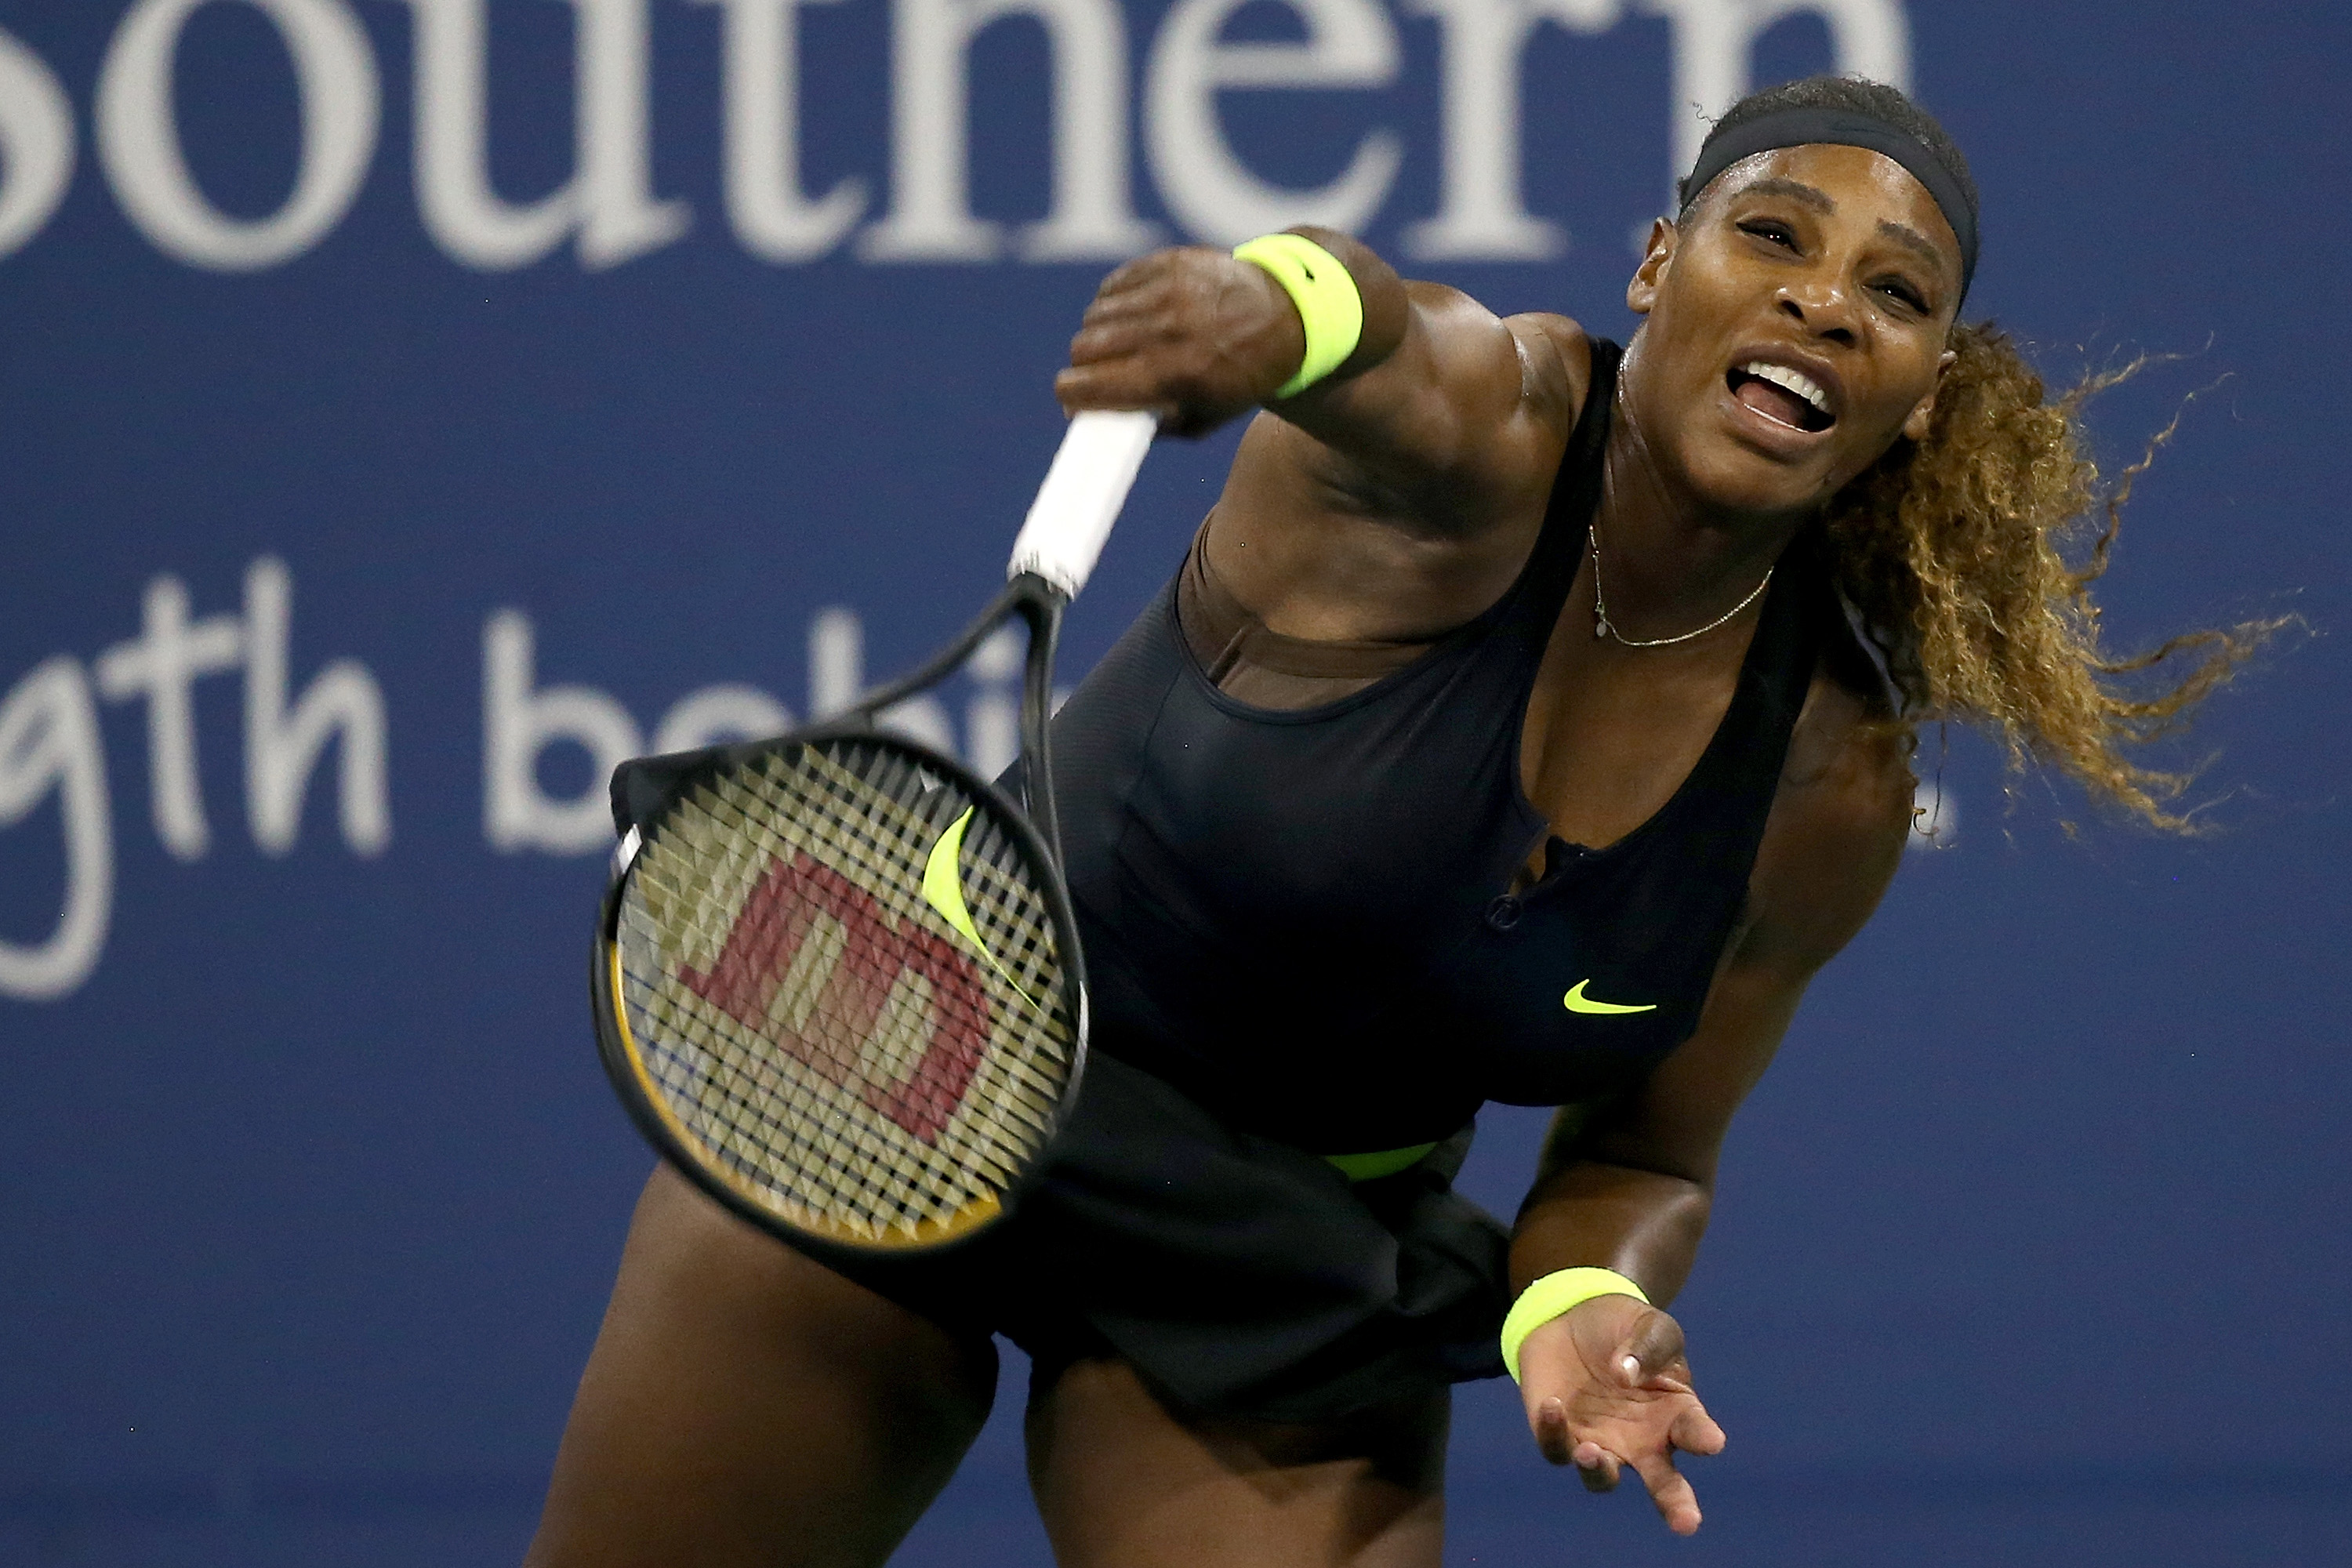 'It's like dating a guy that you know sucks,' says Serena Williams after loss